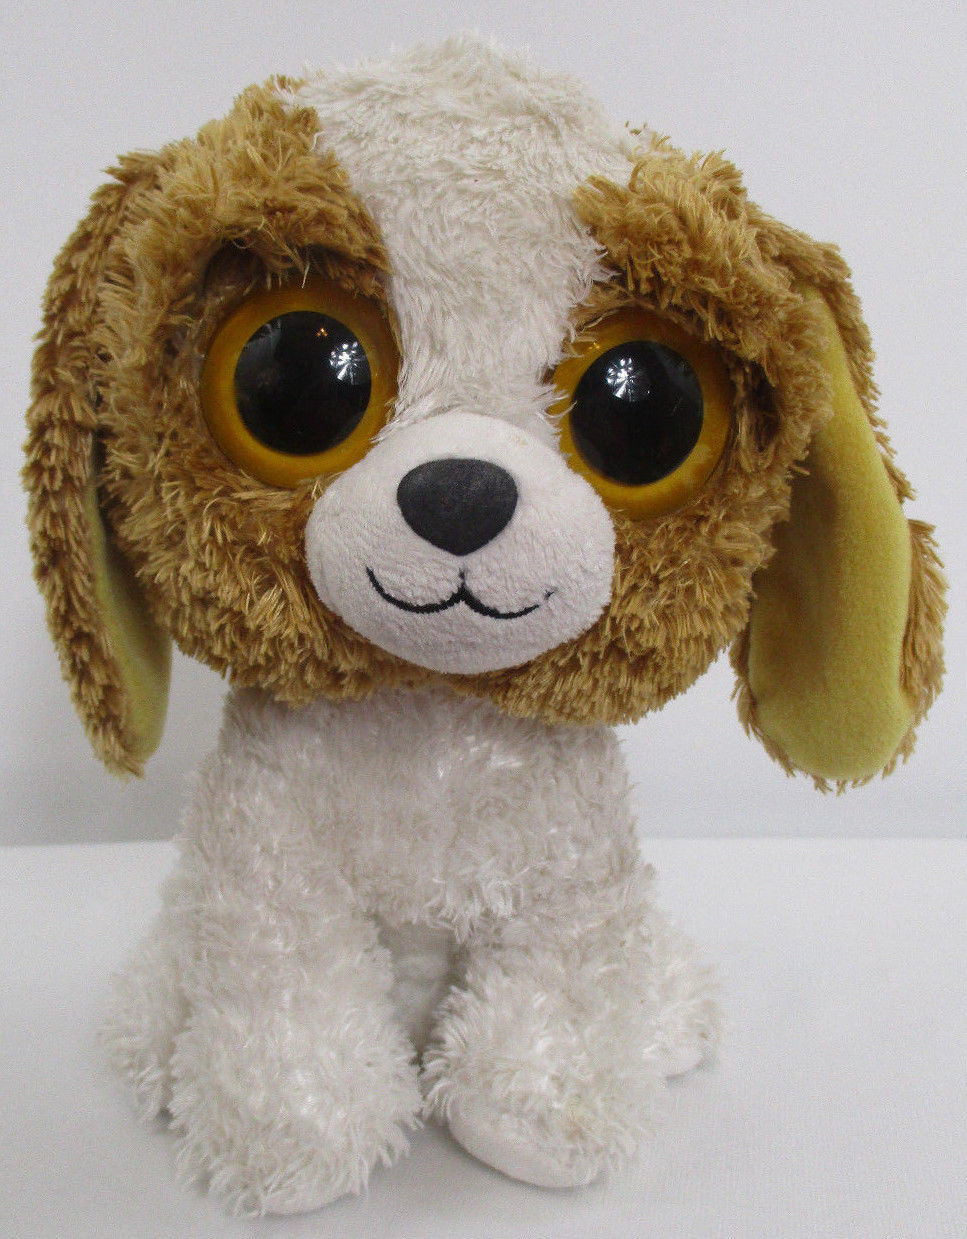 TY Beanie Boo Buddies COOKIE Brown Dog Hang and 50 similar items. S l1600 2a44276bbc22